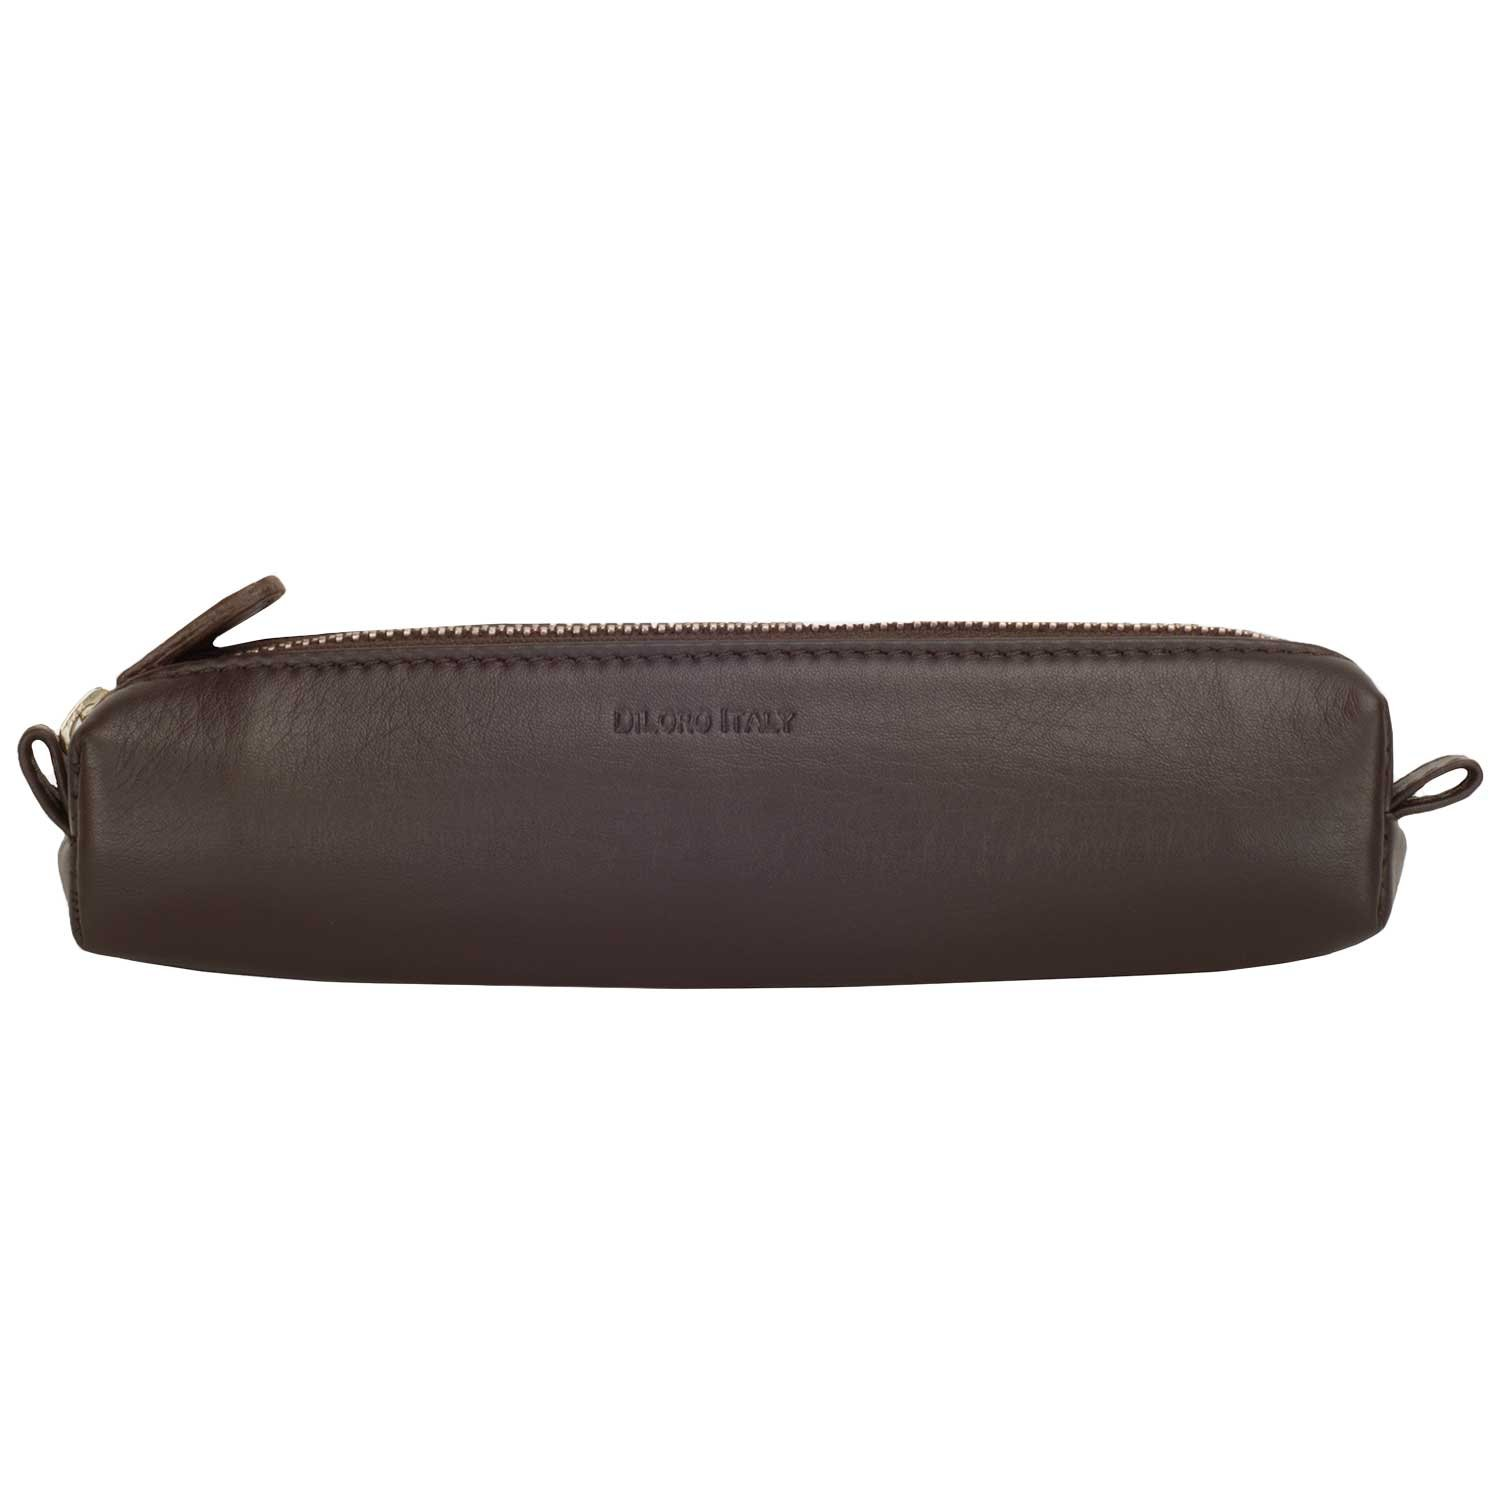 DiLoro Italy Zippered Fountain Ballpoint Rollerball Pens and Pencils Case Holder Pouch Genuine Full Grain Soft Nappa Leather (Nappa Brown)